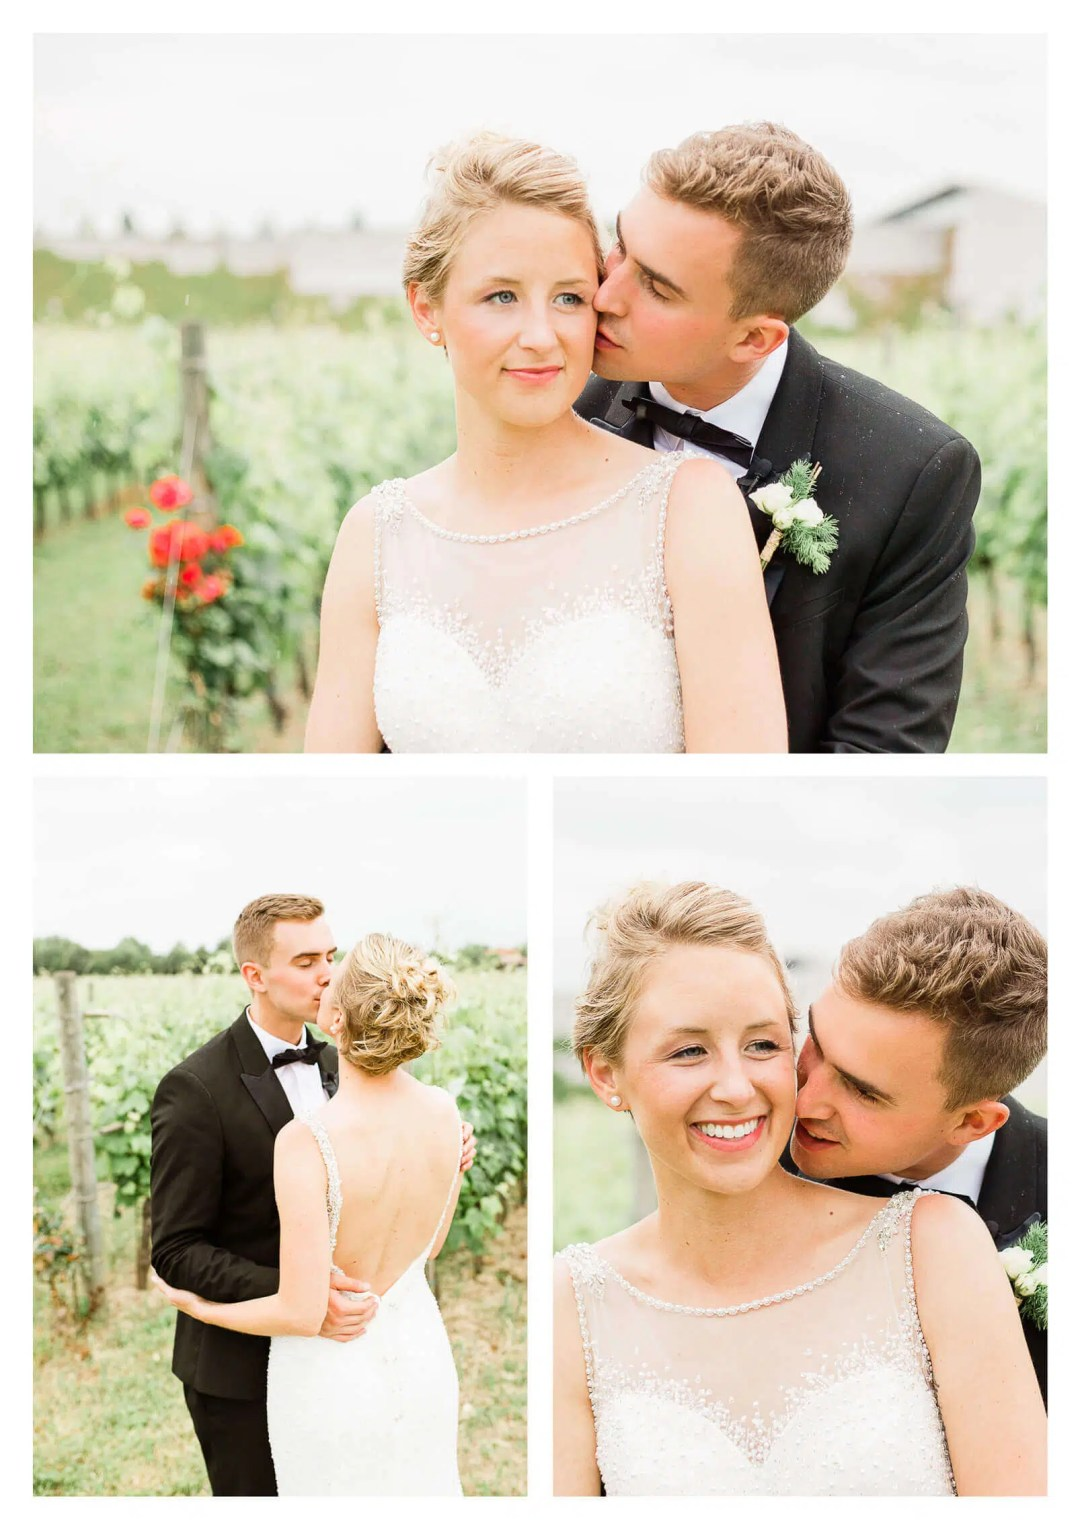 Fossa Mala wedding couple portraits in vineyard | Italy photographer